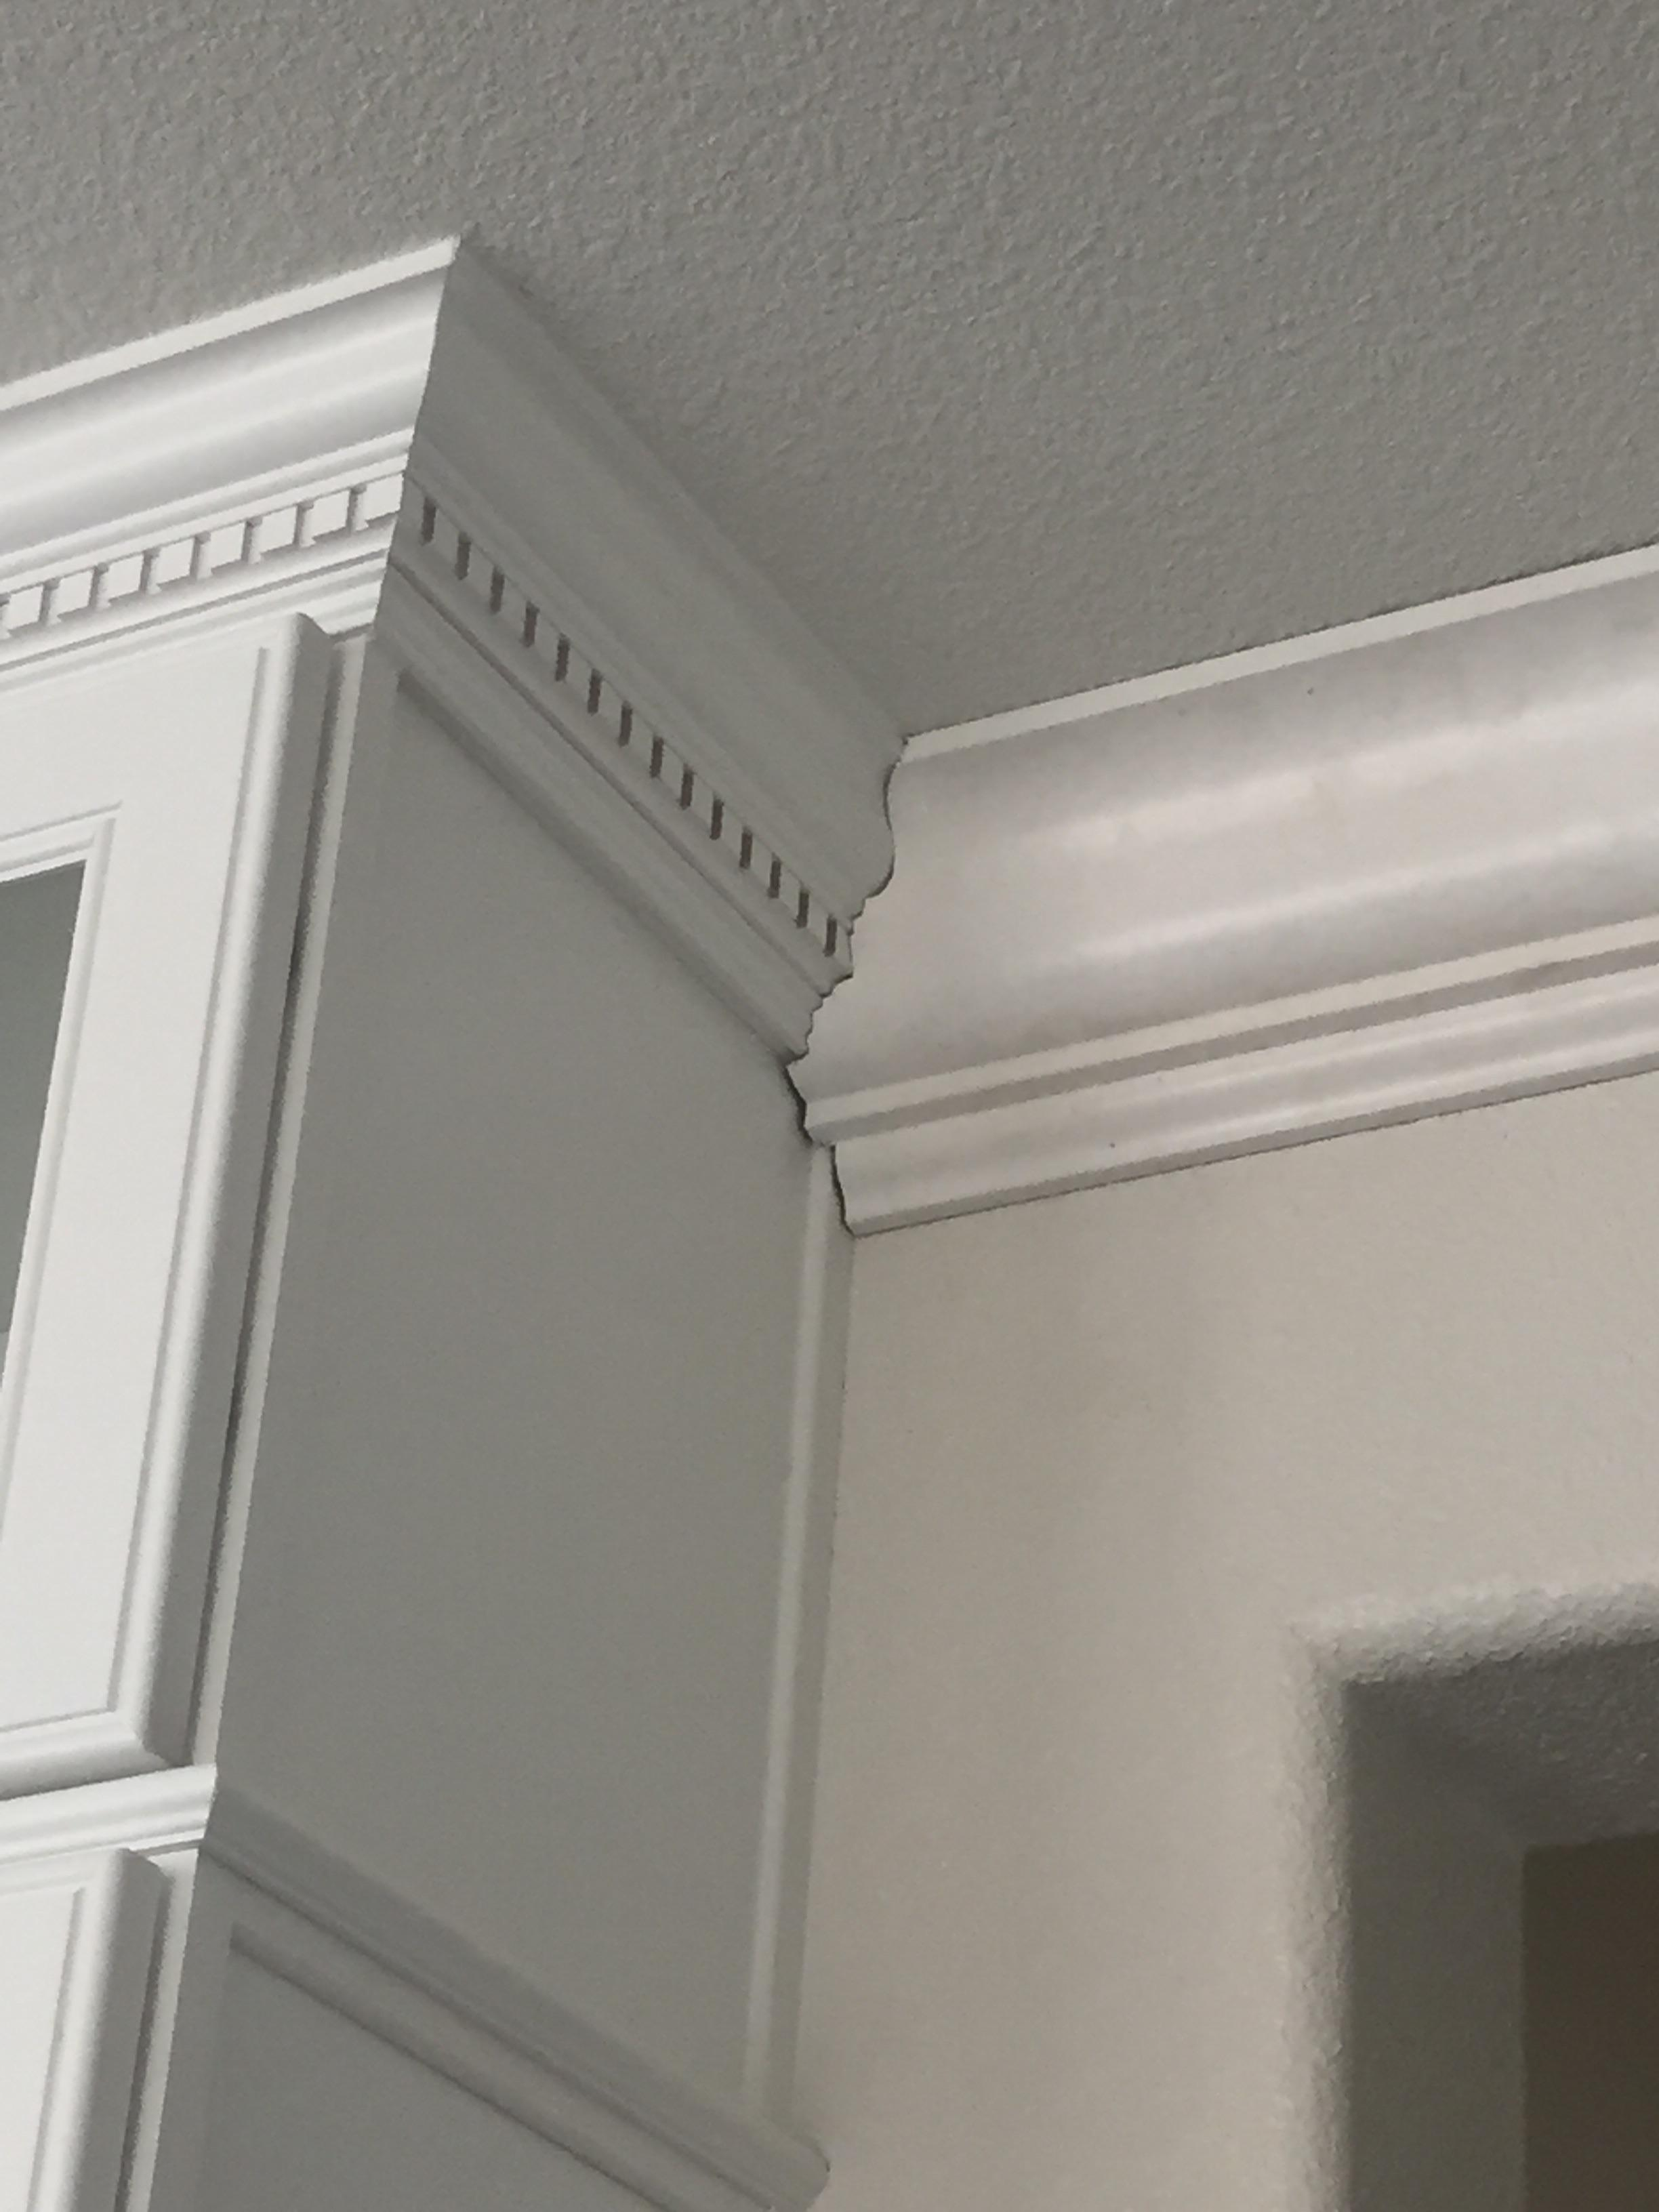 Joining 2 Different Crown Moldings - Page 2 - Finish Carpentry ...